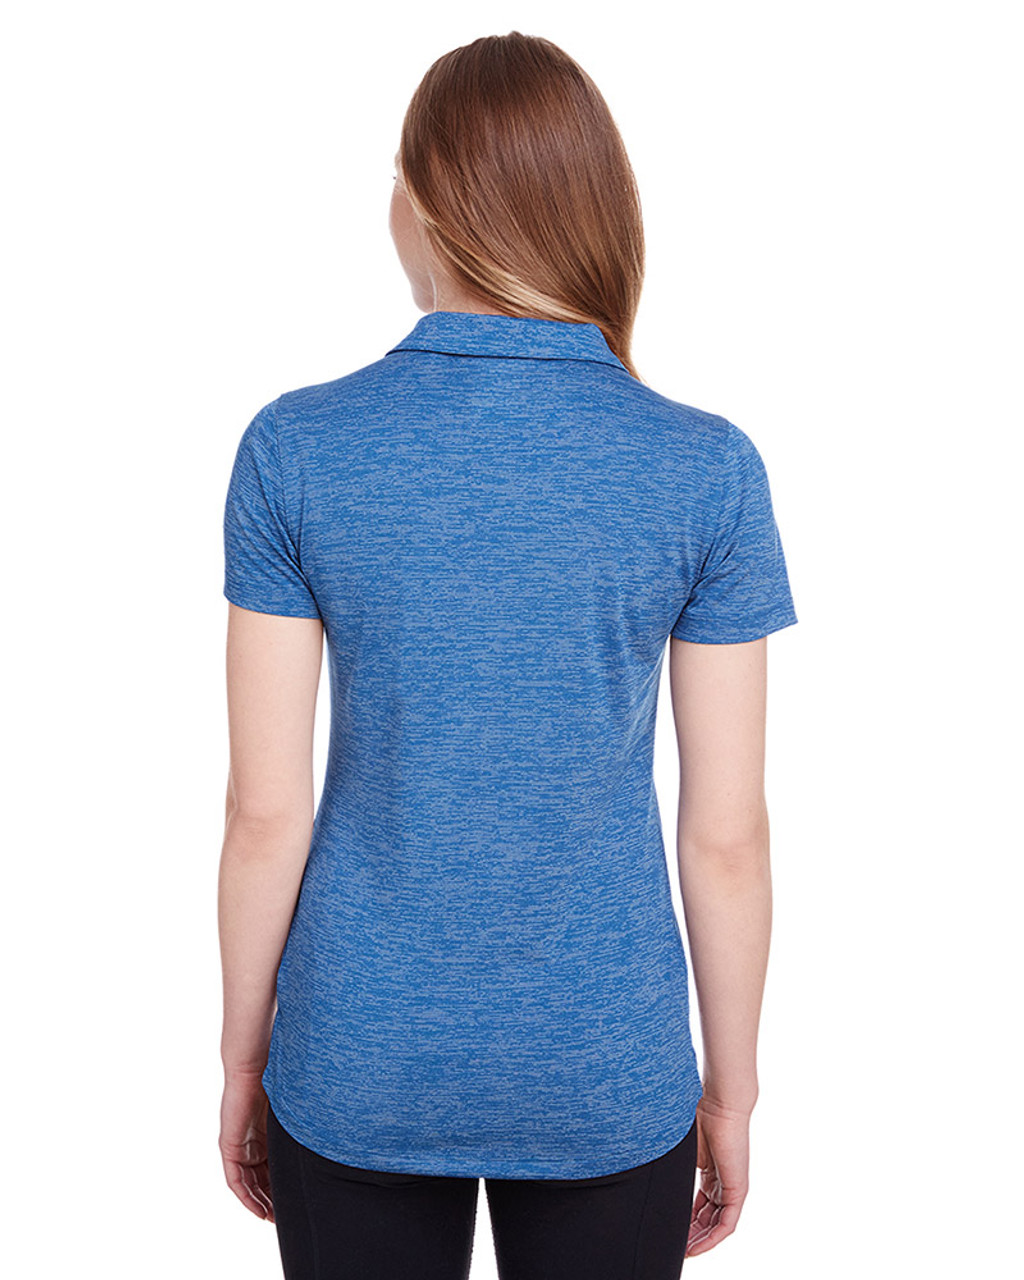 Lapis Blue - back, 596802 Puma Golf Ladies' Icon Heather Polo | Blankclothing.ca